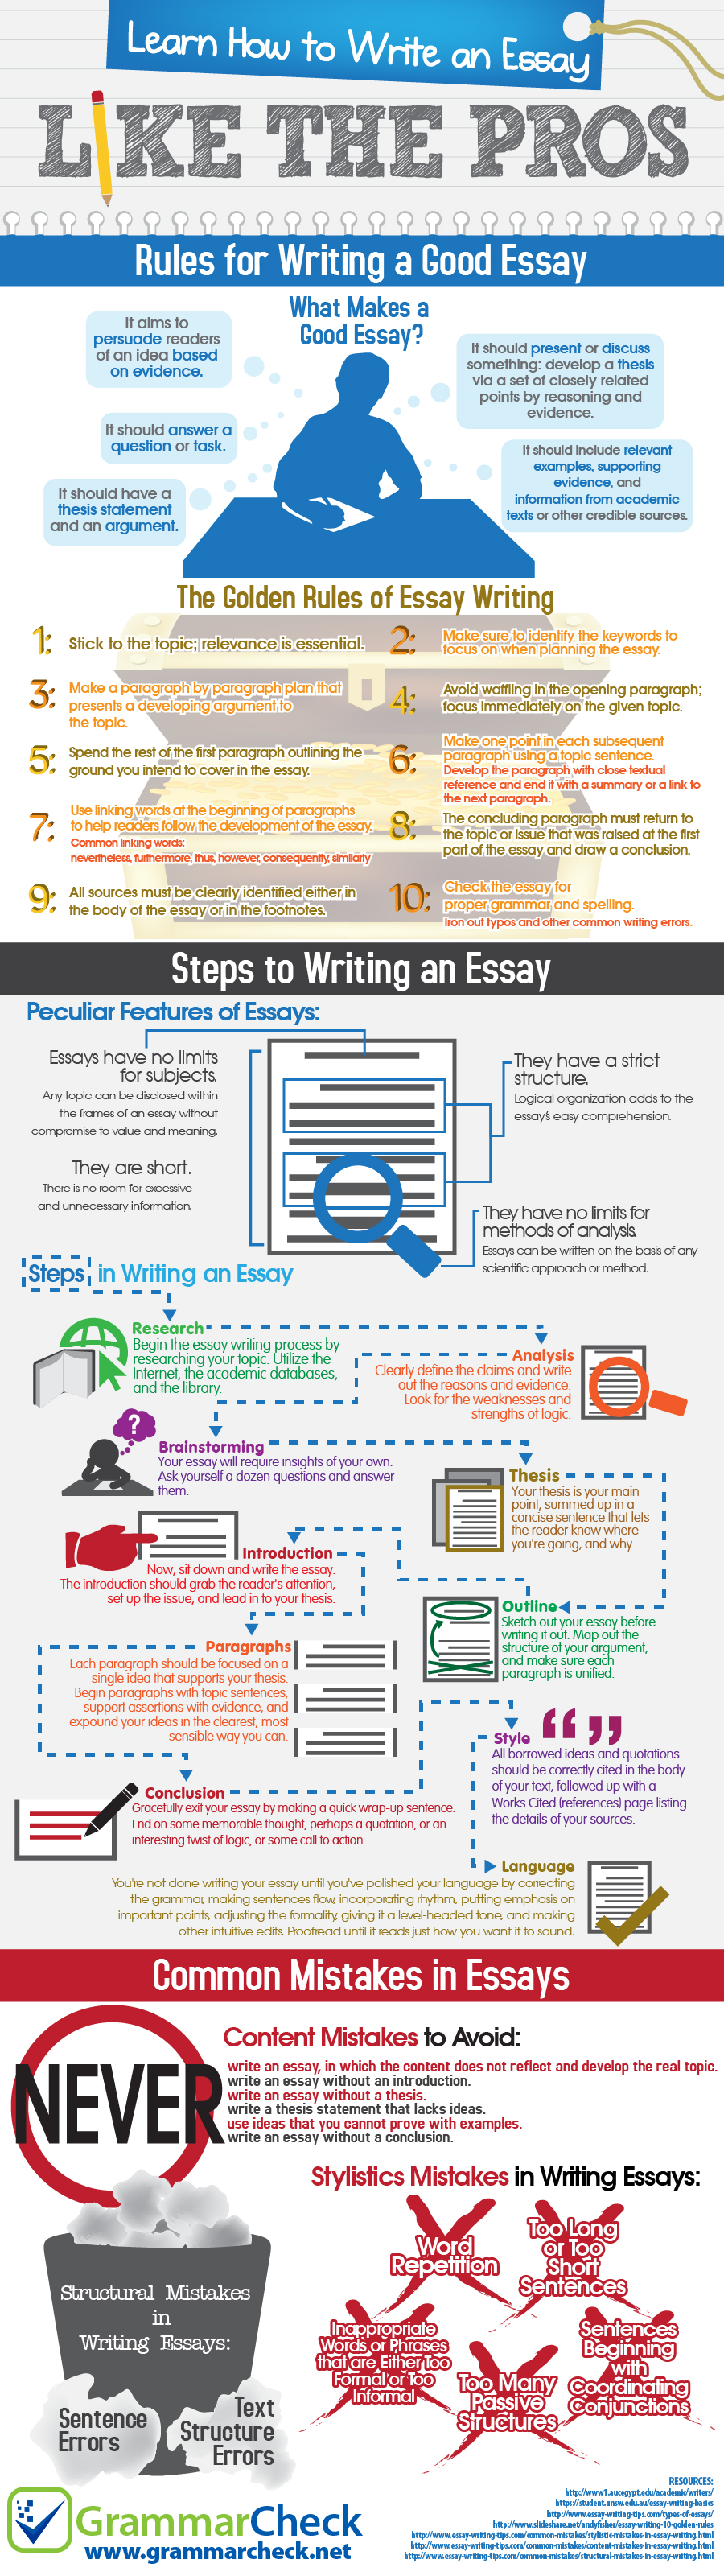 Research Paper Essay Format  English Essay My Best Friend also Essay For High School Students How To Write An Essay Like The Pros Infographic Example Of A Thesis Essay